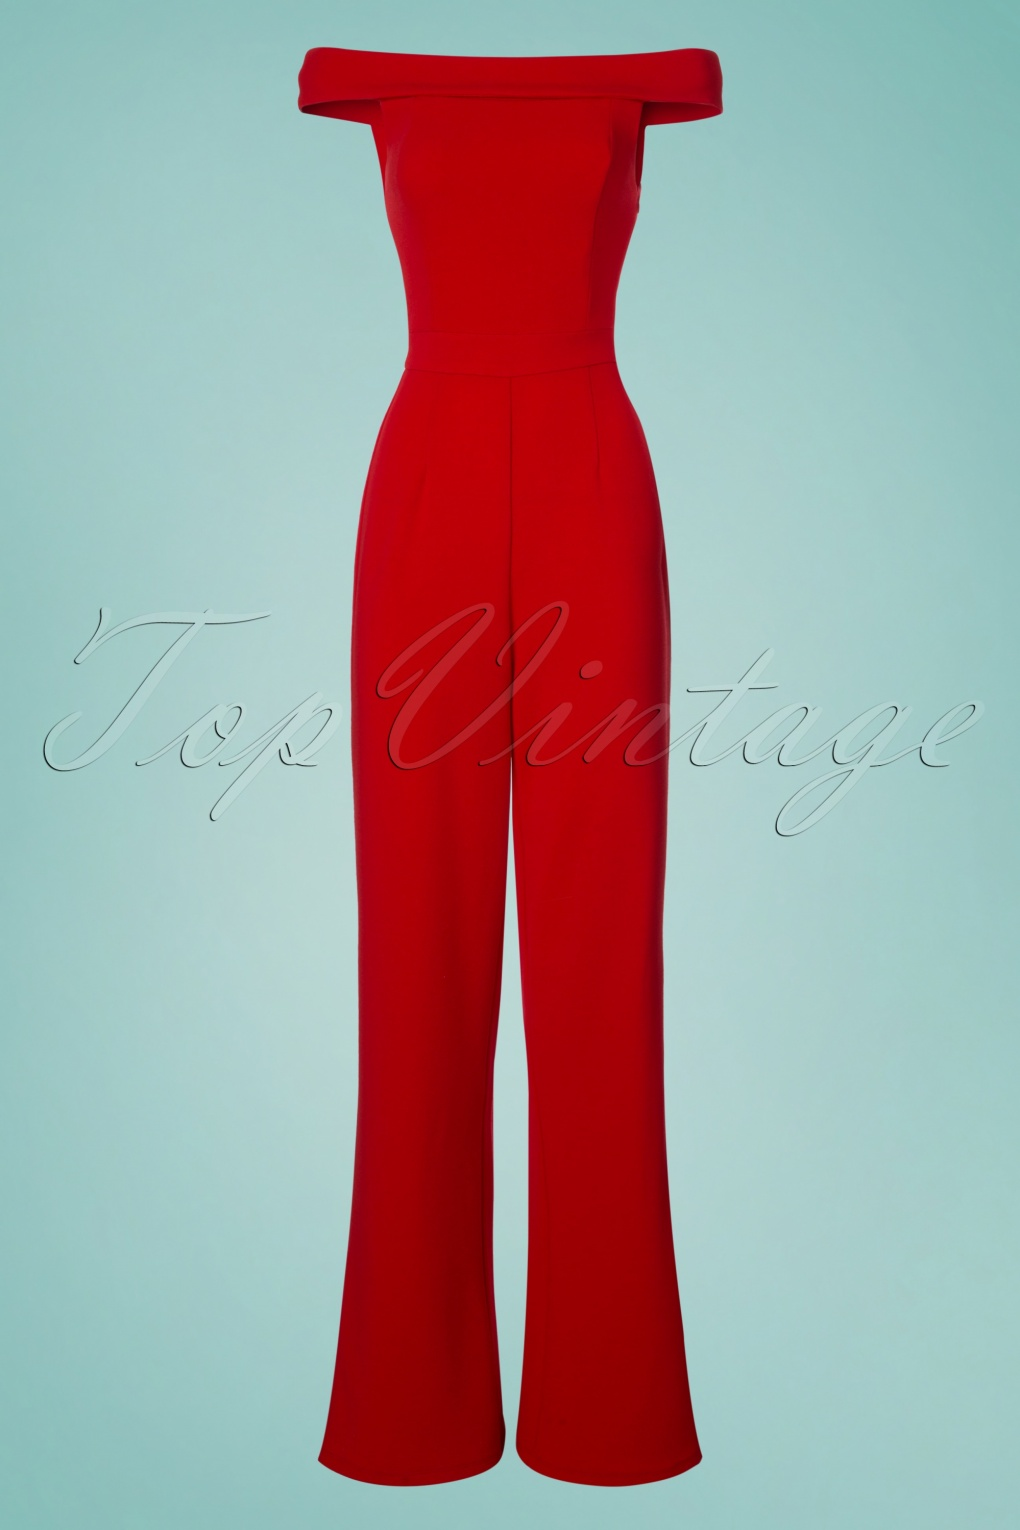 Vintage High Waisted Trousers, Sailor Pants, Jeans 70s Mono Gamboge Jumpsuit in Red £79.38 AT vintagedancer.com